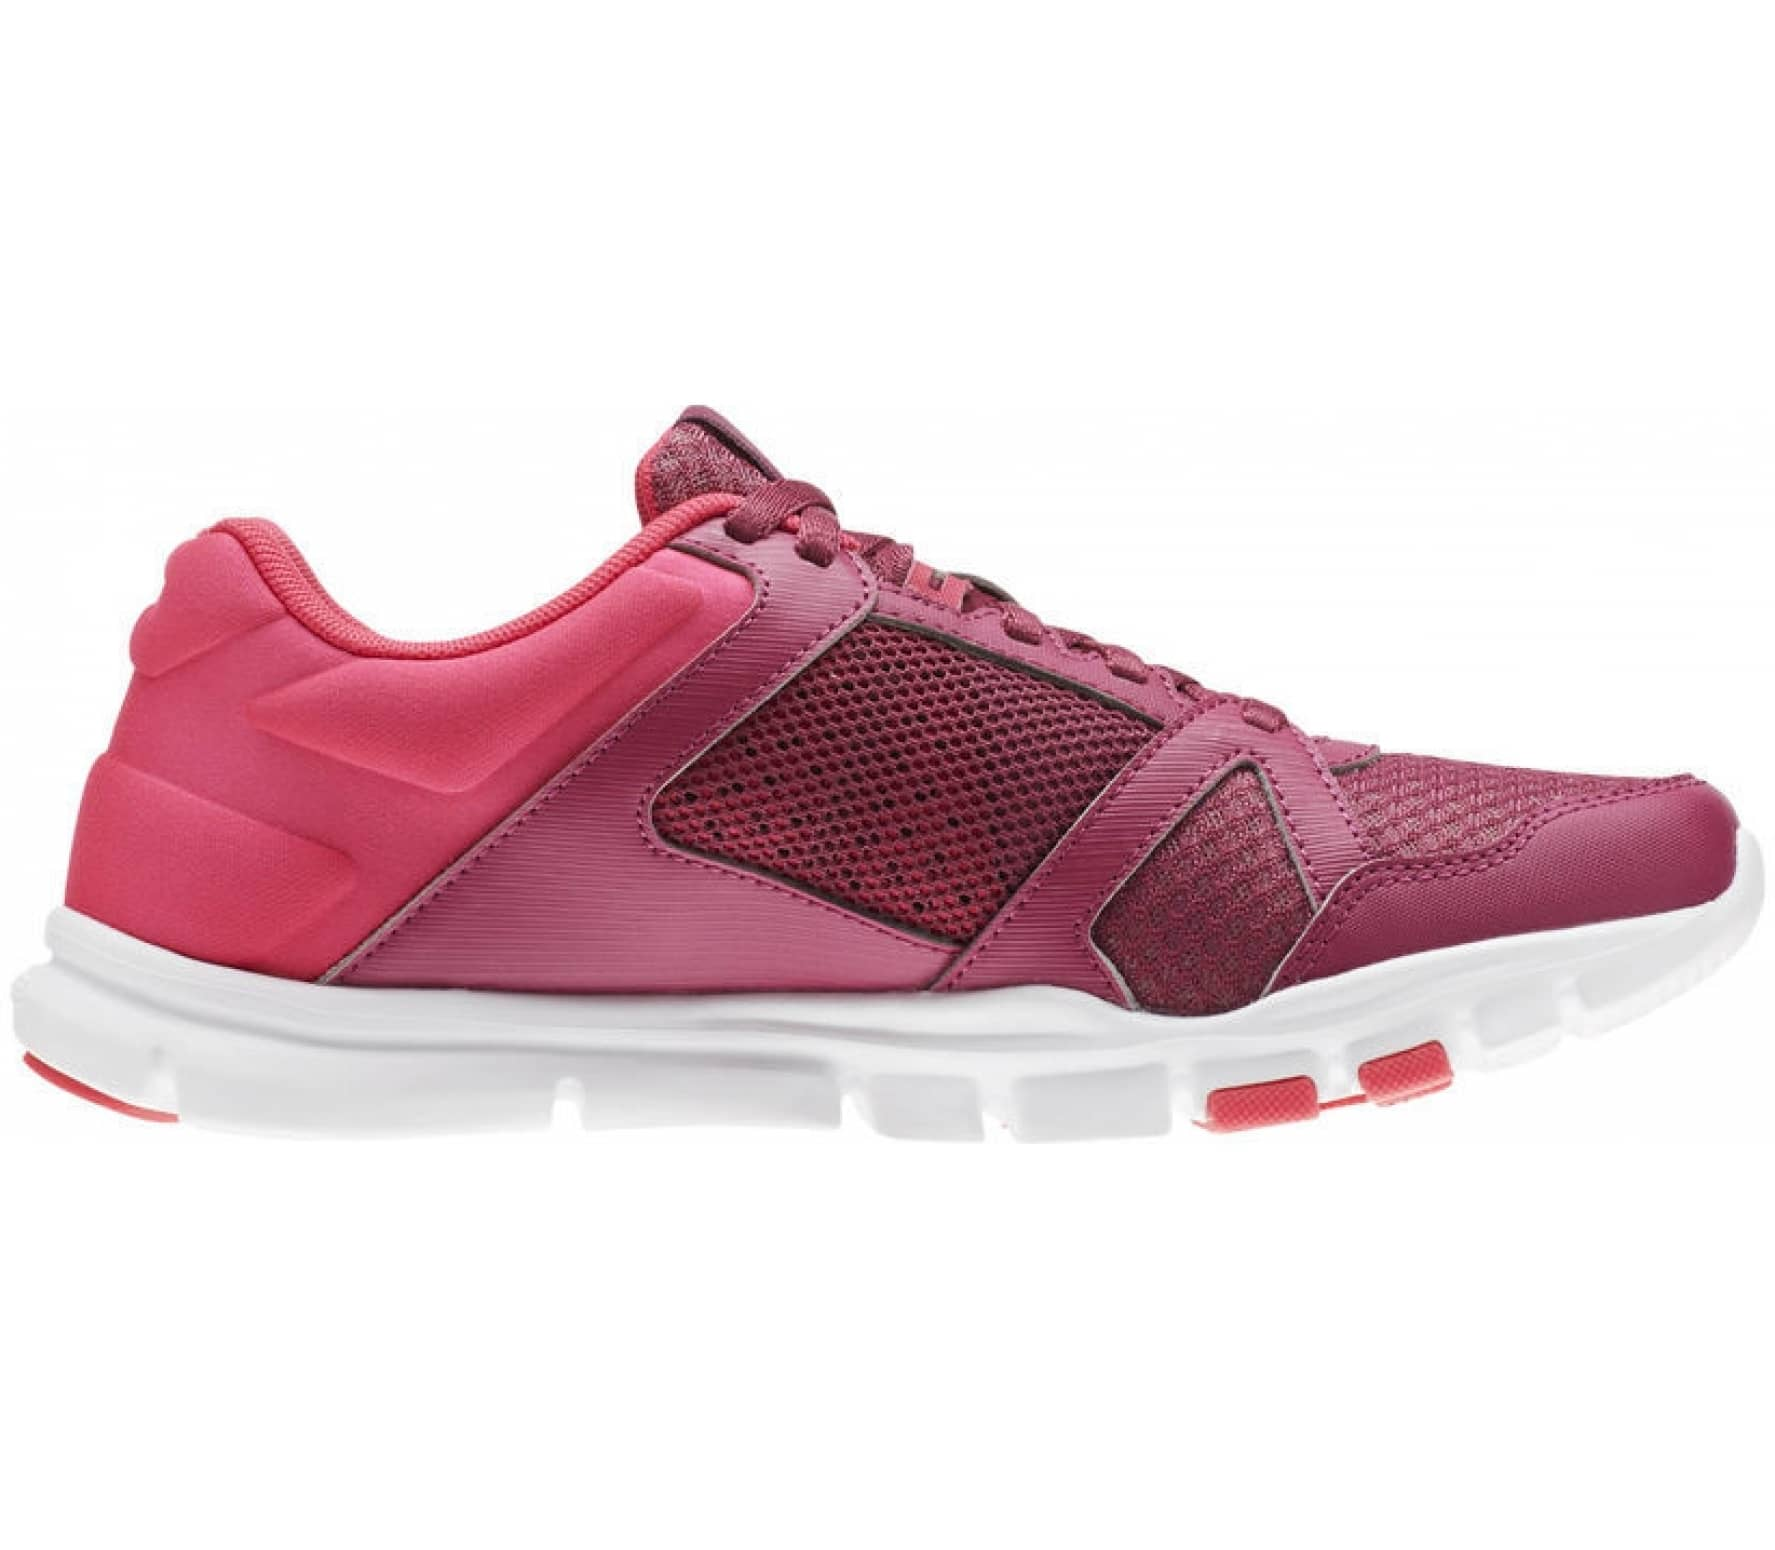 2ac4ef116ab84 Yourflex Trainette Damen Trainingsschuh (pink weiß) - EU 42 - UK 8. REEBOK  ...